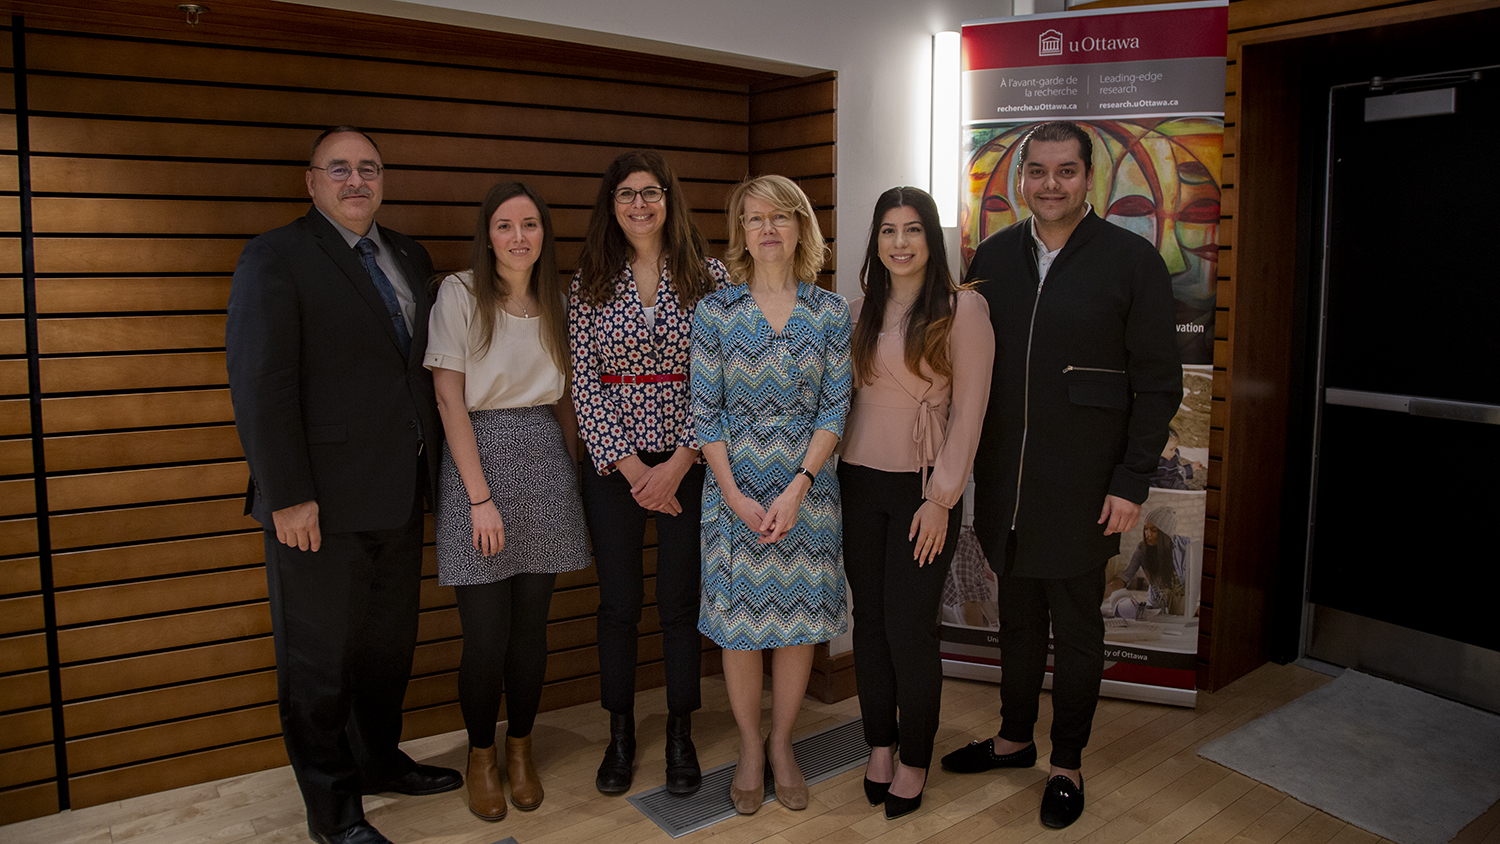 A group of six people standing in front of a uOttawa Research banner